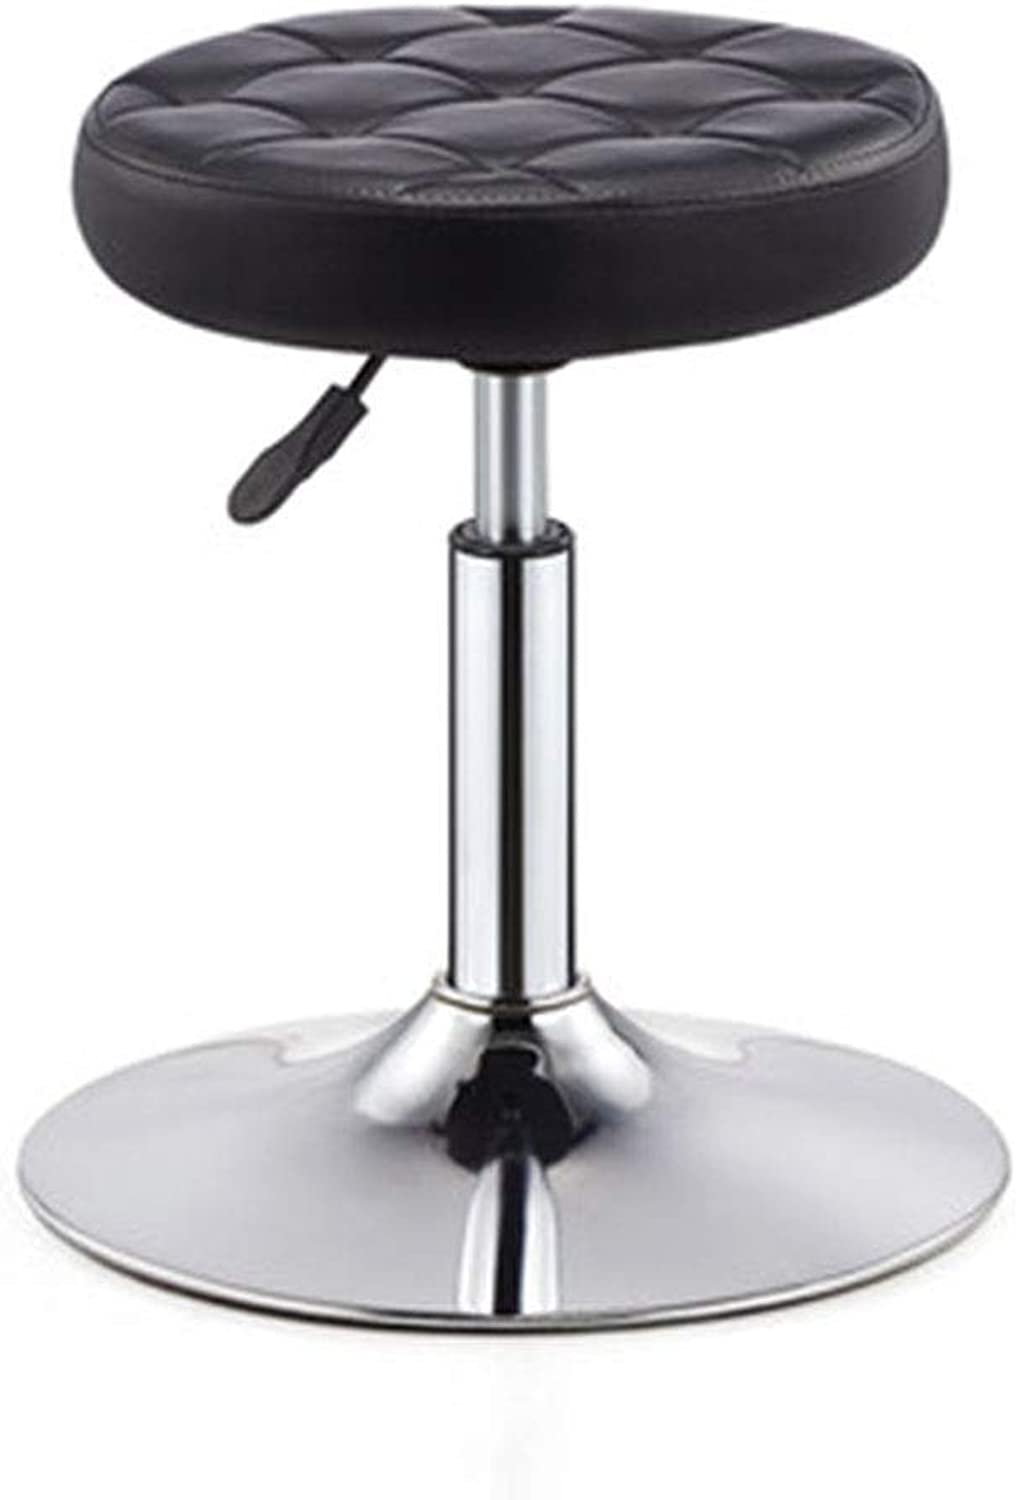 Bar Chair Hairdressing Stool Lifting Stool Stool Bench Swivel Stool Shaped Cotton Sedentary Does Not Deform 7 colors 1 Size (color   B)